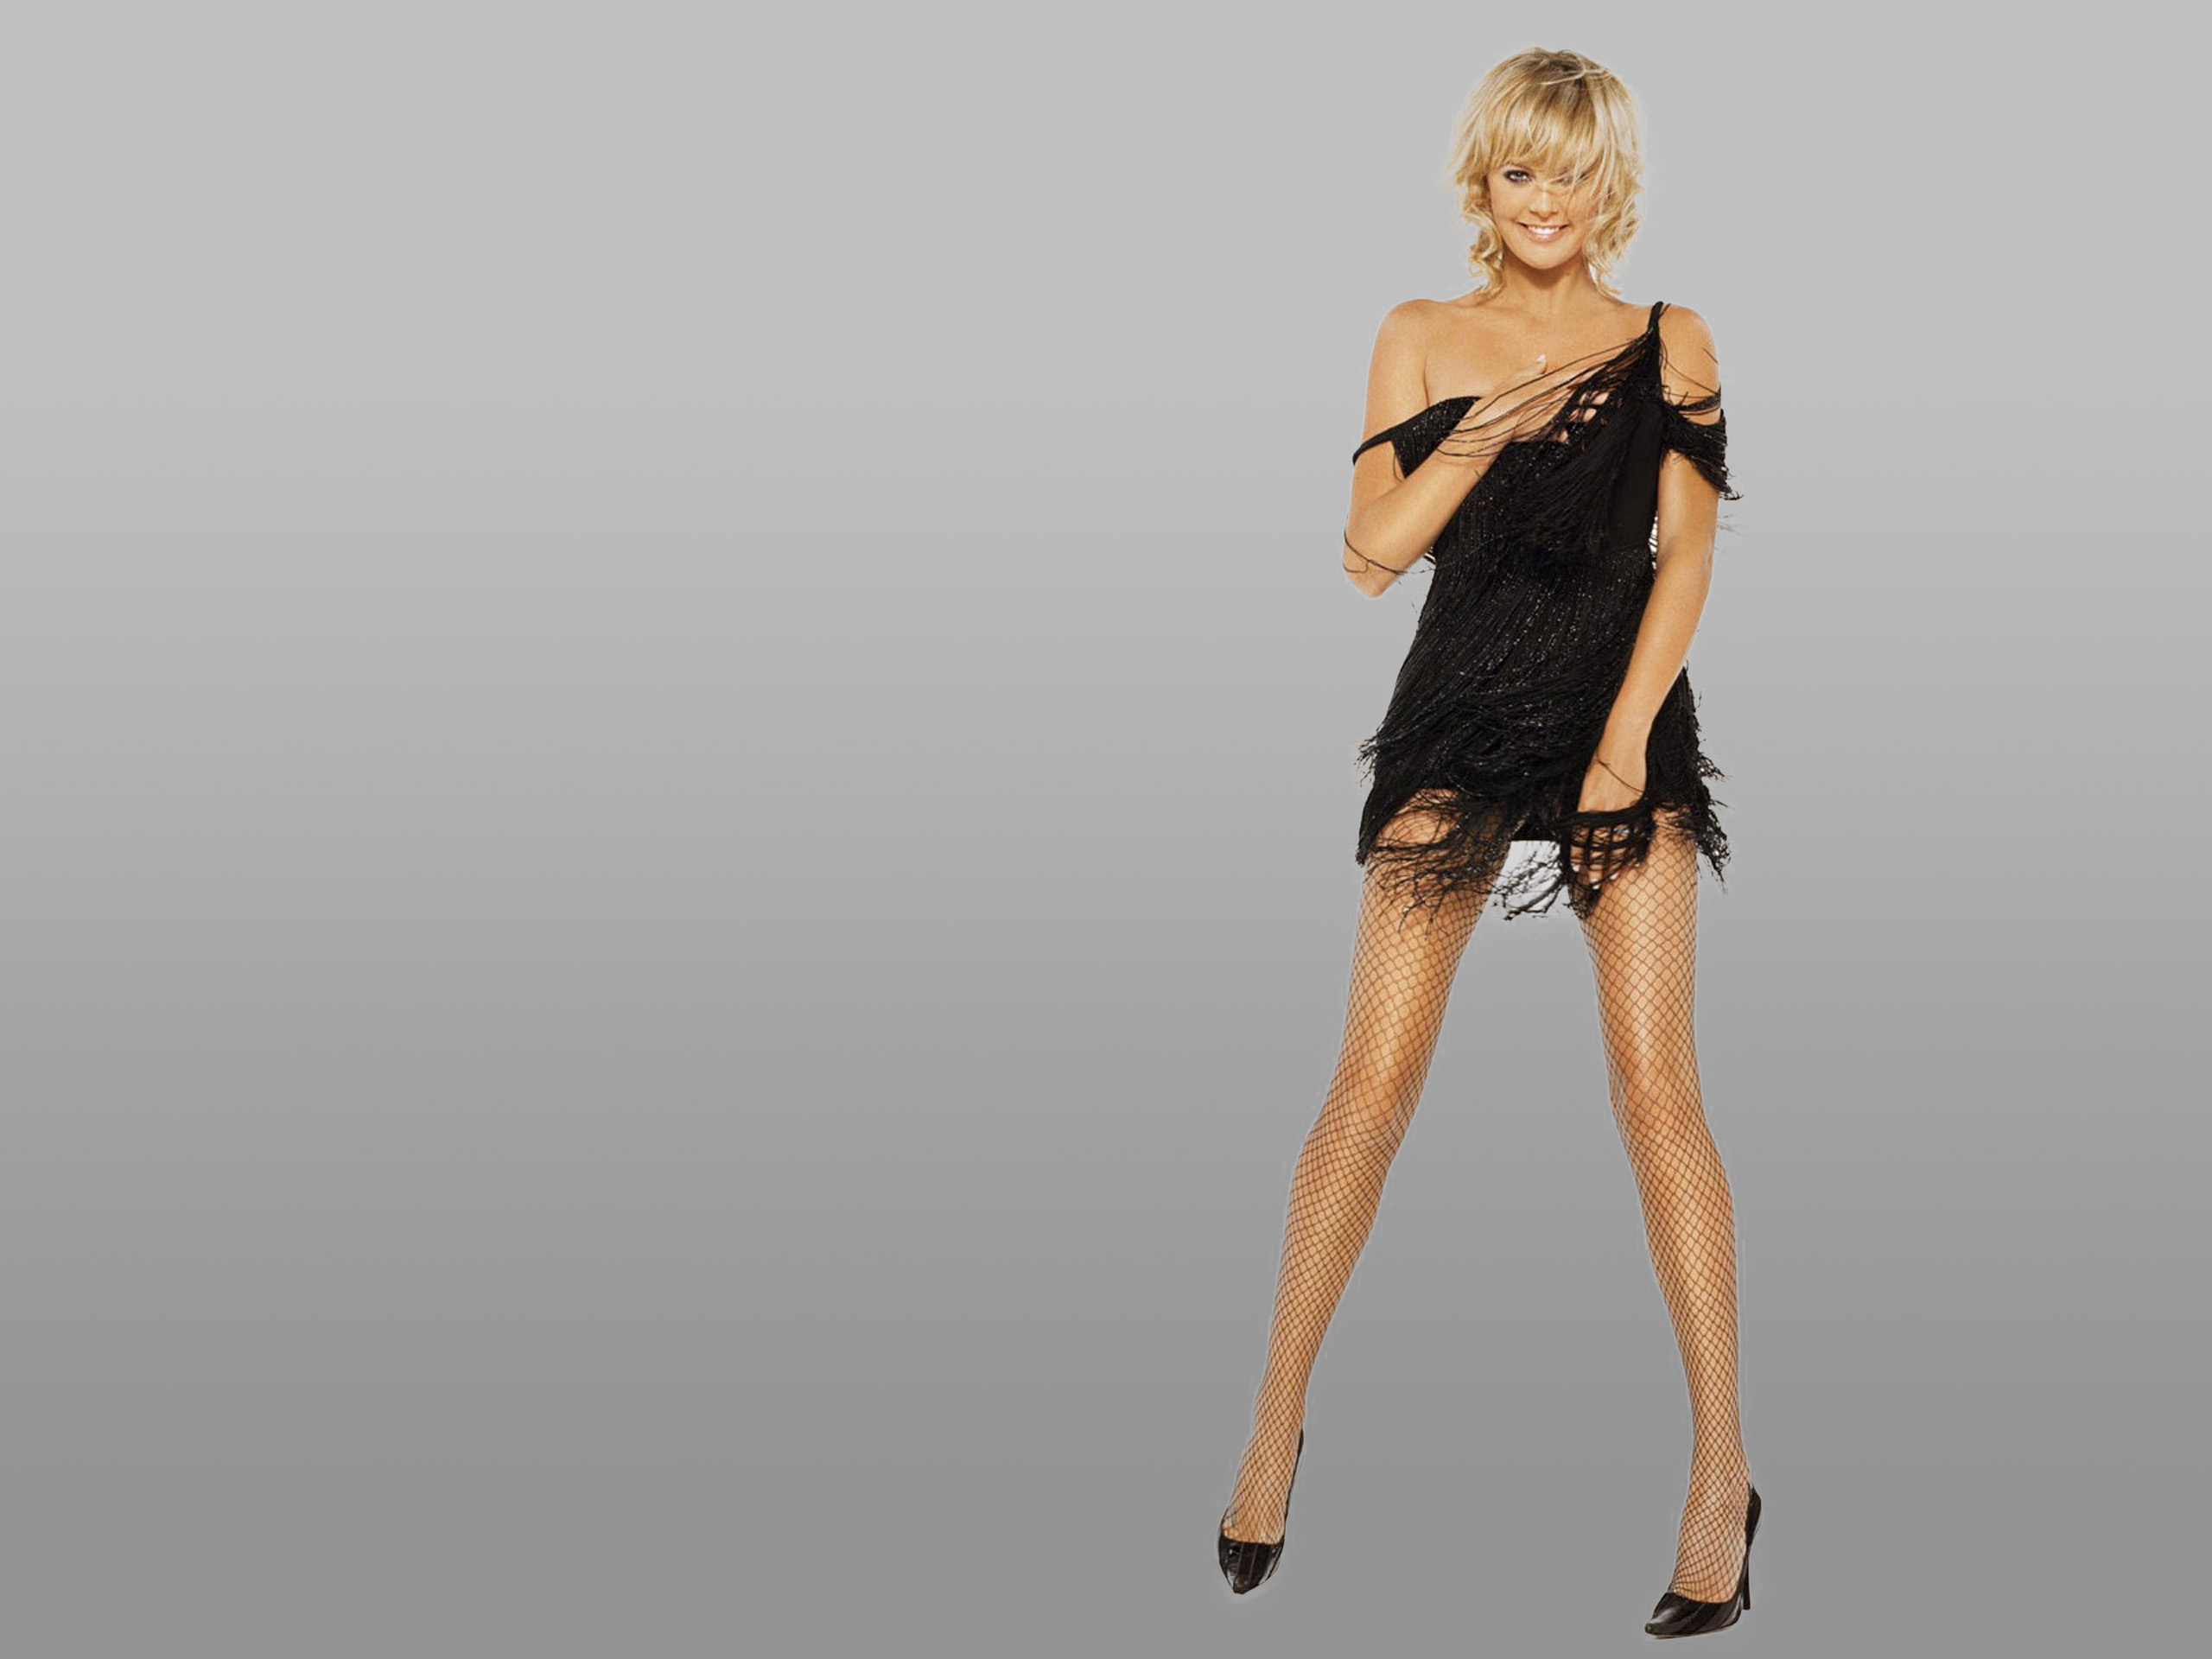 2560x1920 - Charlize Theron Wallpapers 7